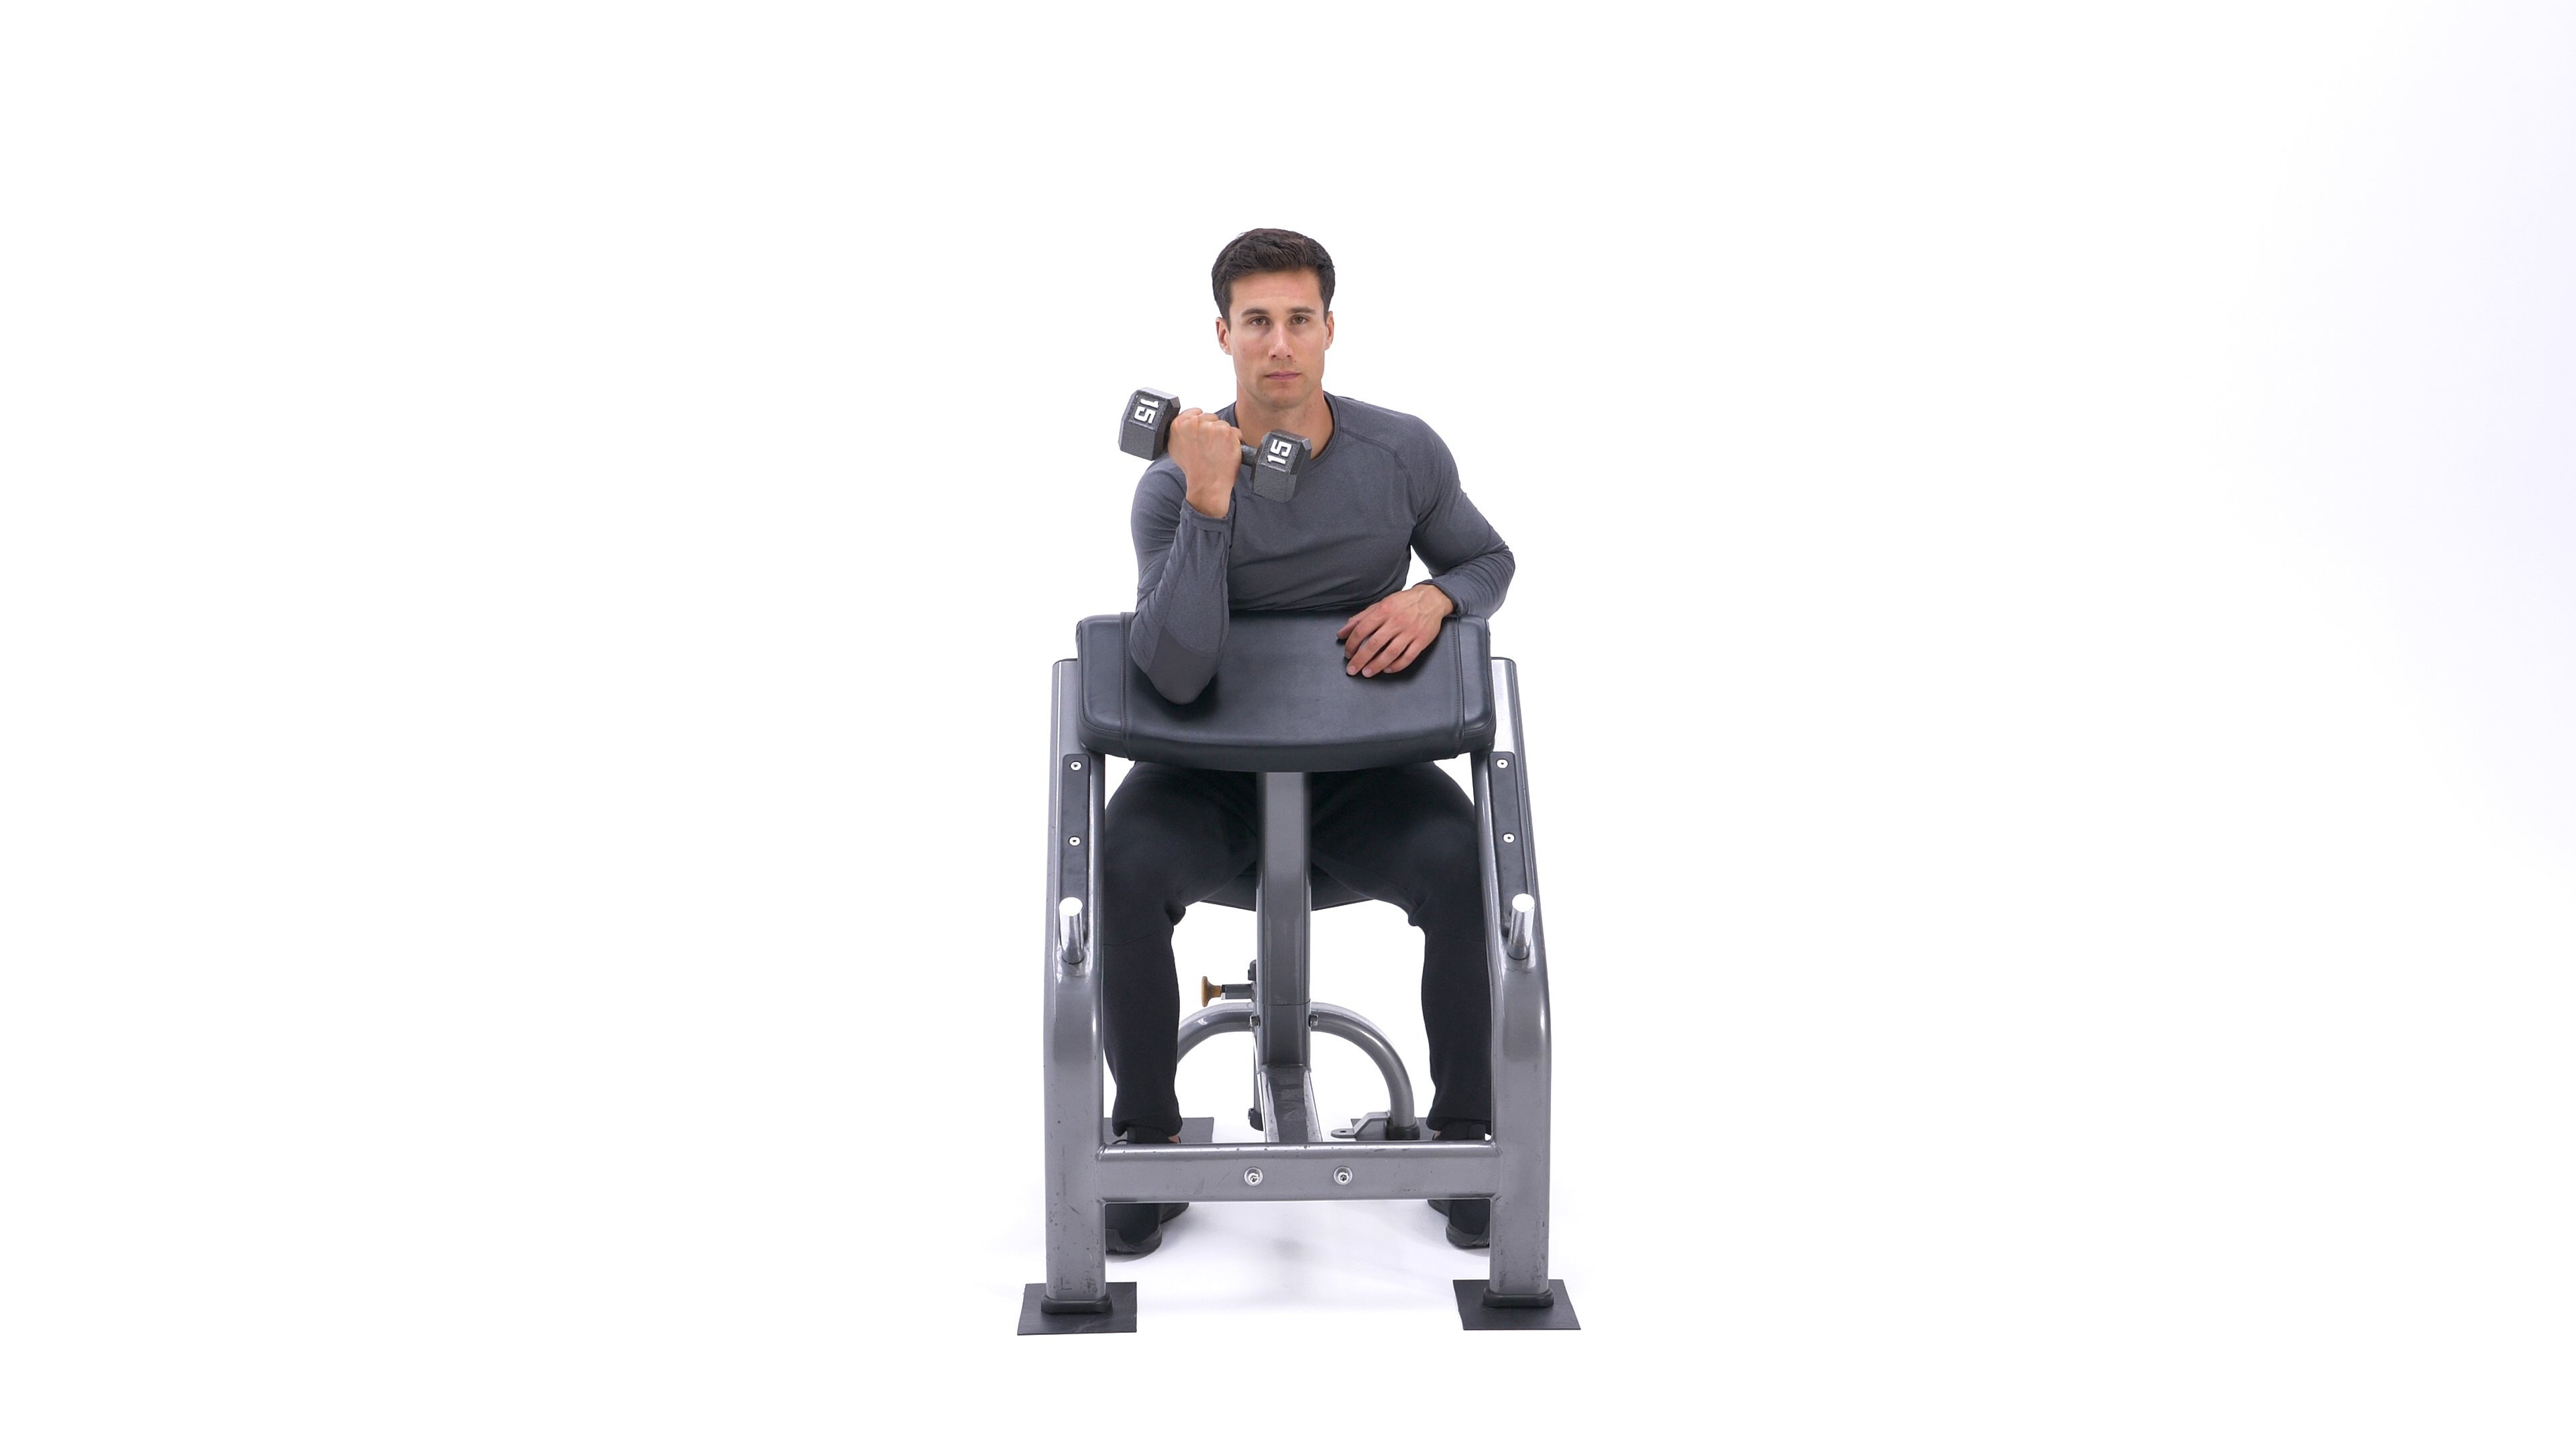 Single-arm dumbbell preacher curl image